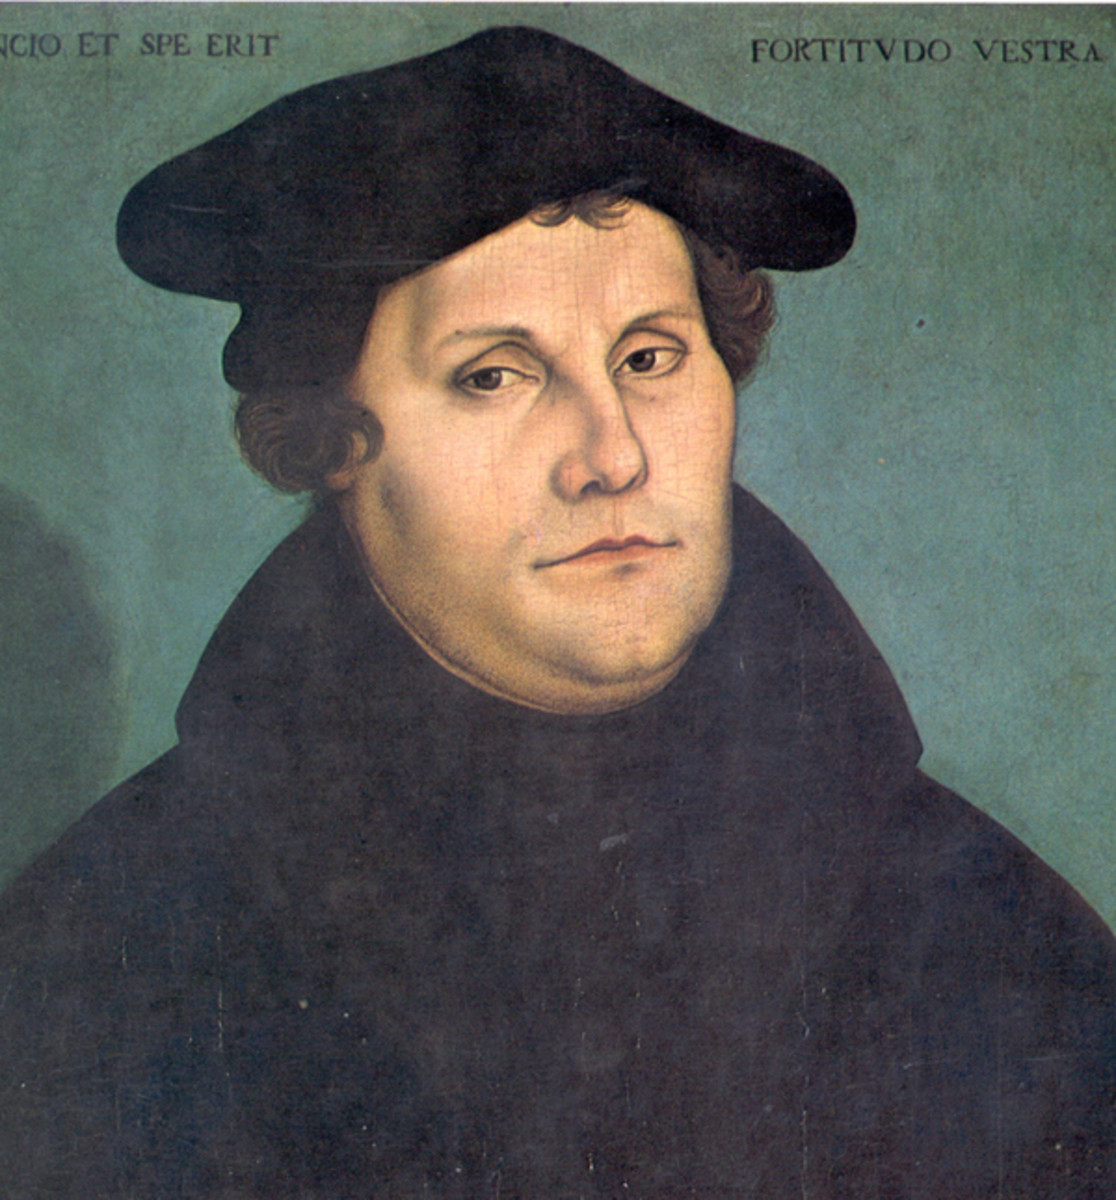 Martin Luther in 1533 at the age of 50.